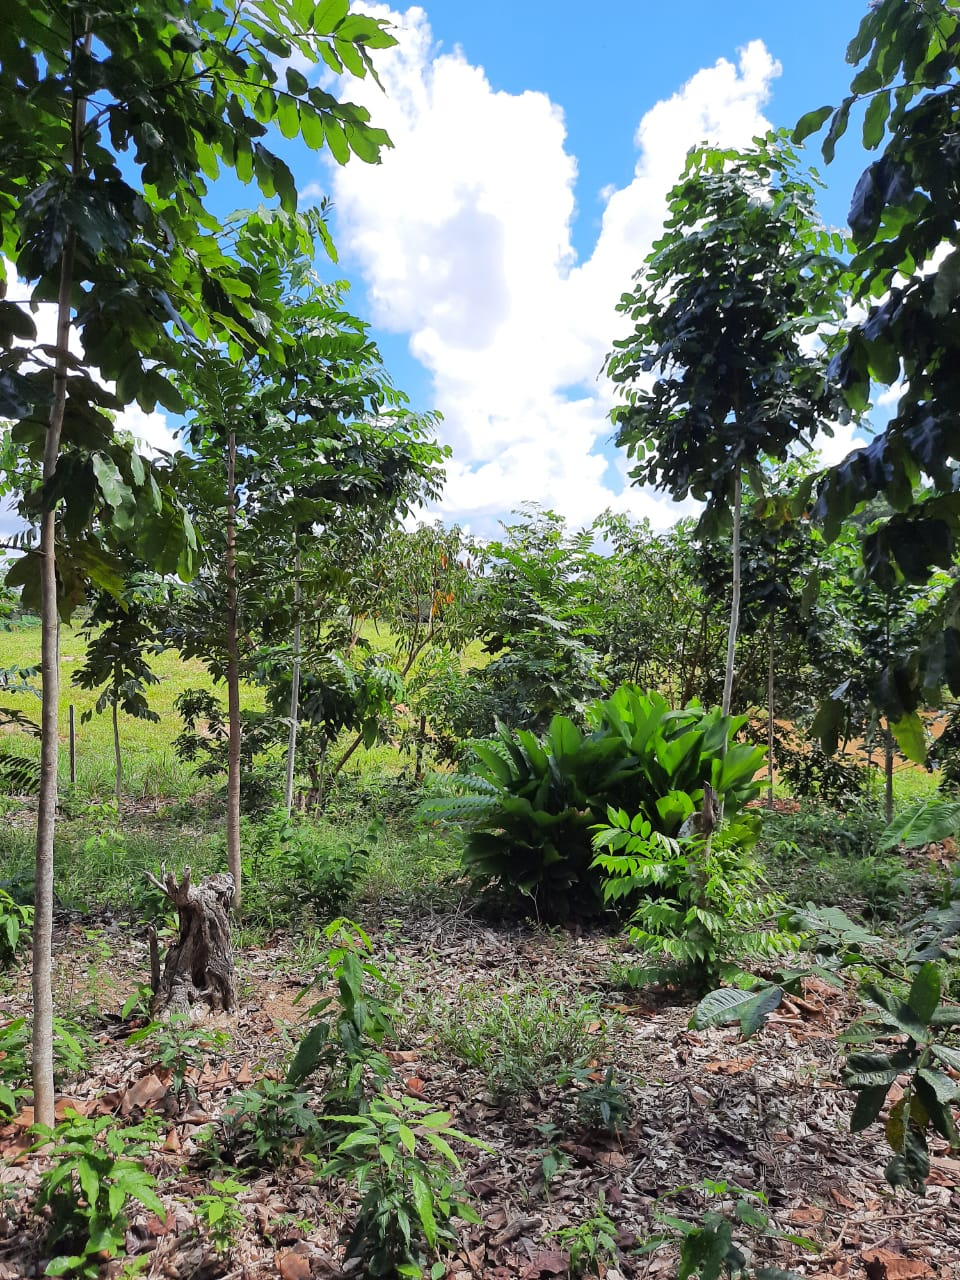 plant-a-tree-planting-charity-native-amazon-rainforest-reforestation-agroforestry-peru-plant-your-future-17